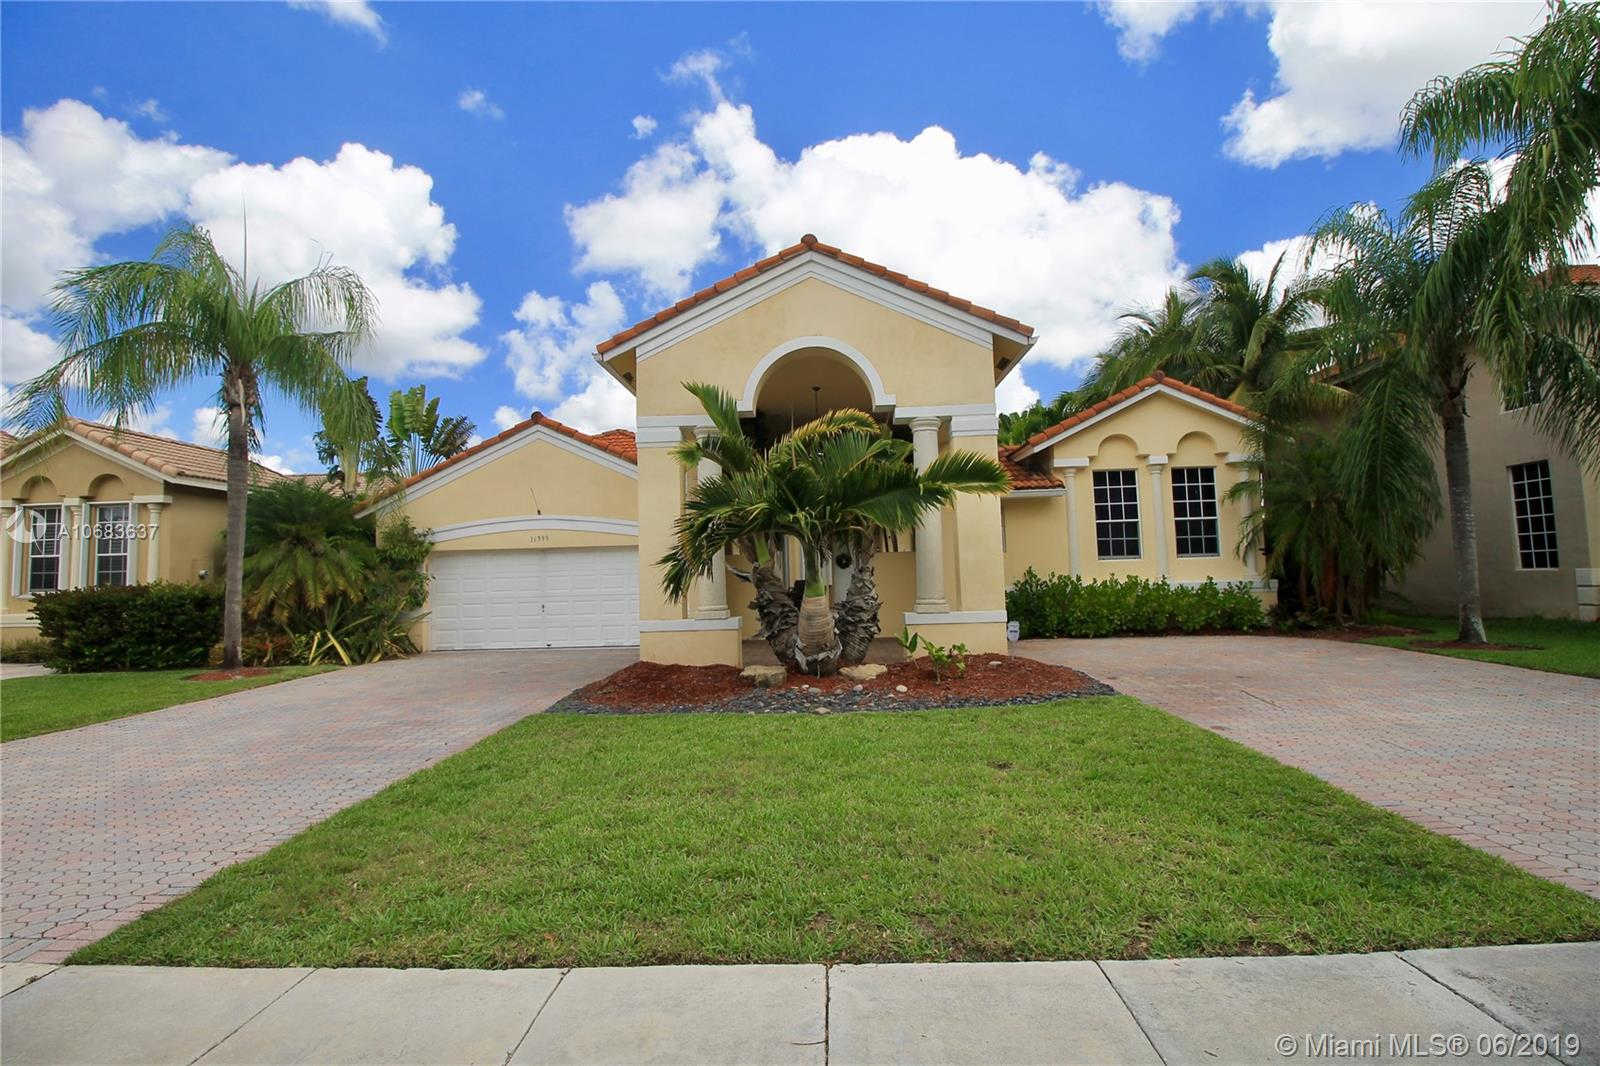 Another Property Rented - 16399 NW 12th St, Pembroke Pines, FL 33028